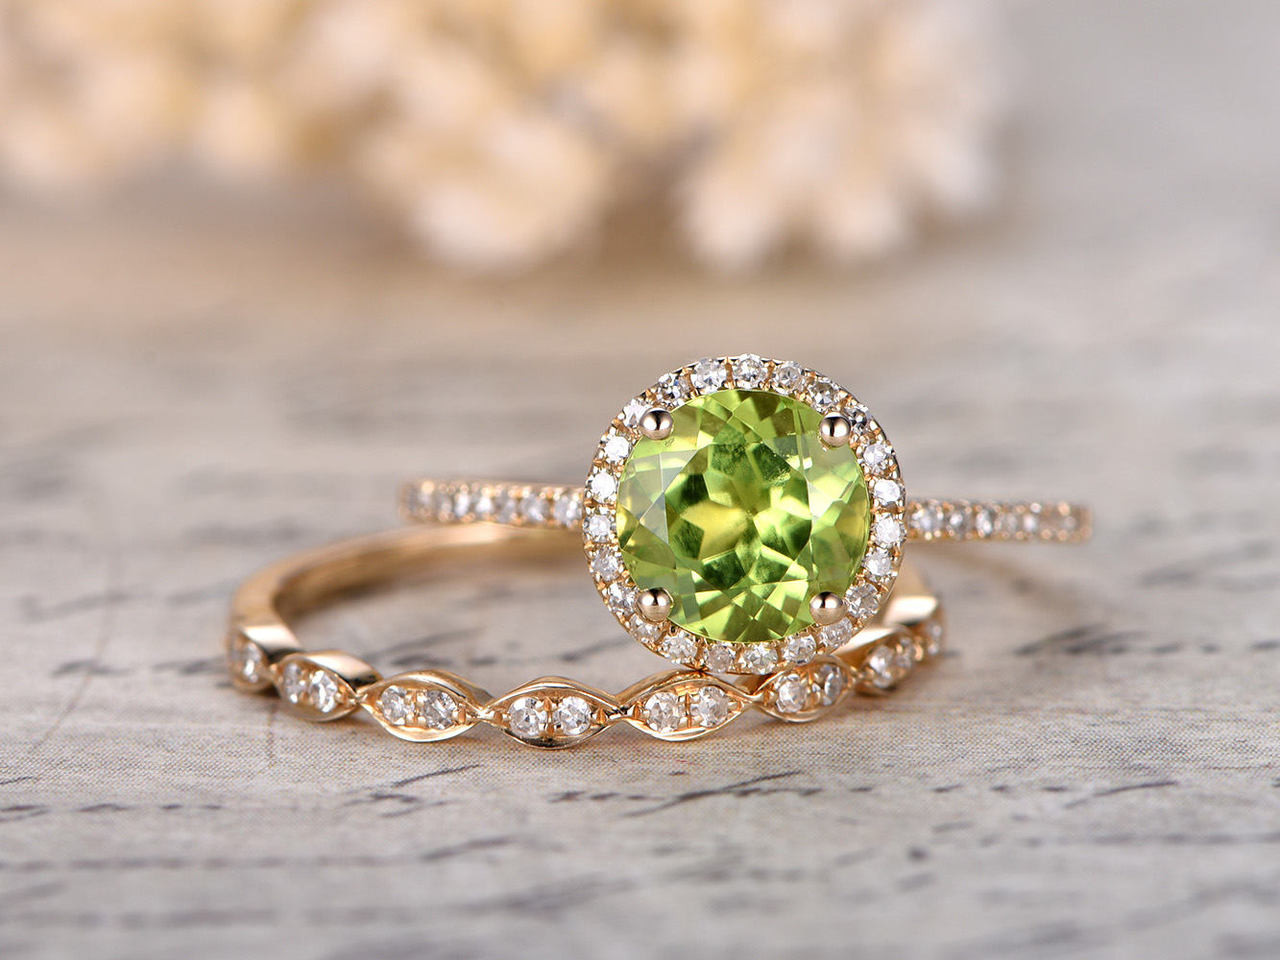 botanical band flower nature engagement pin rings set sterling peridot ring silver bands jewelry wedding